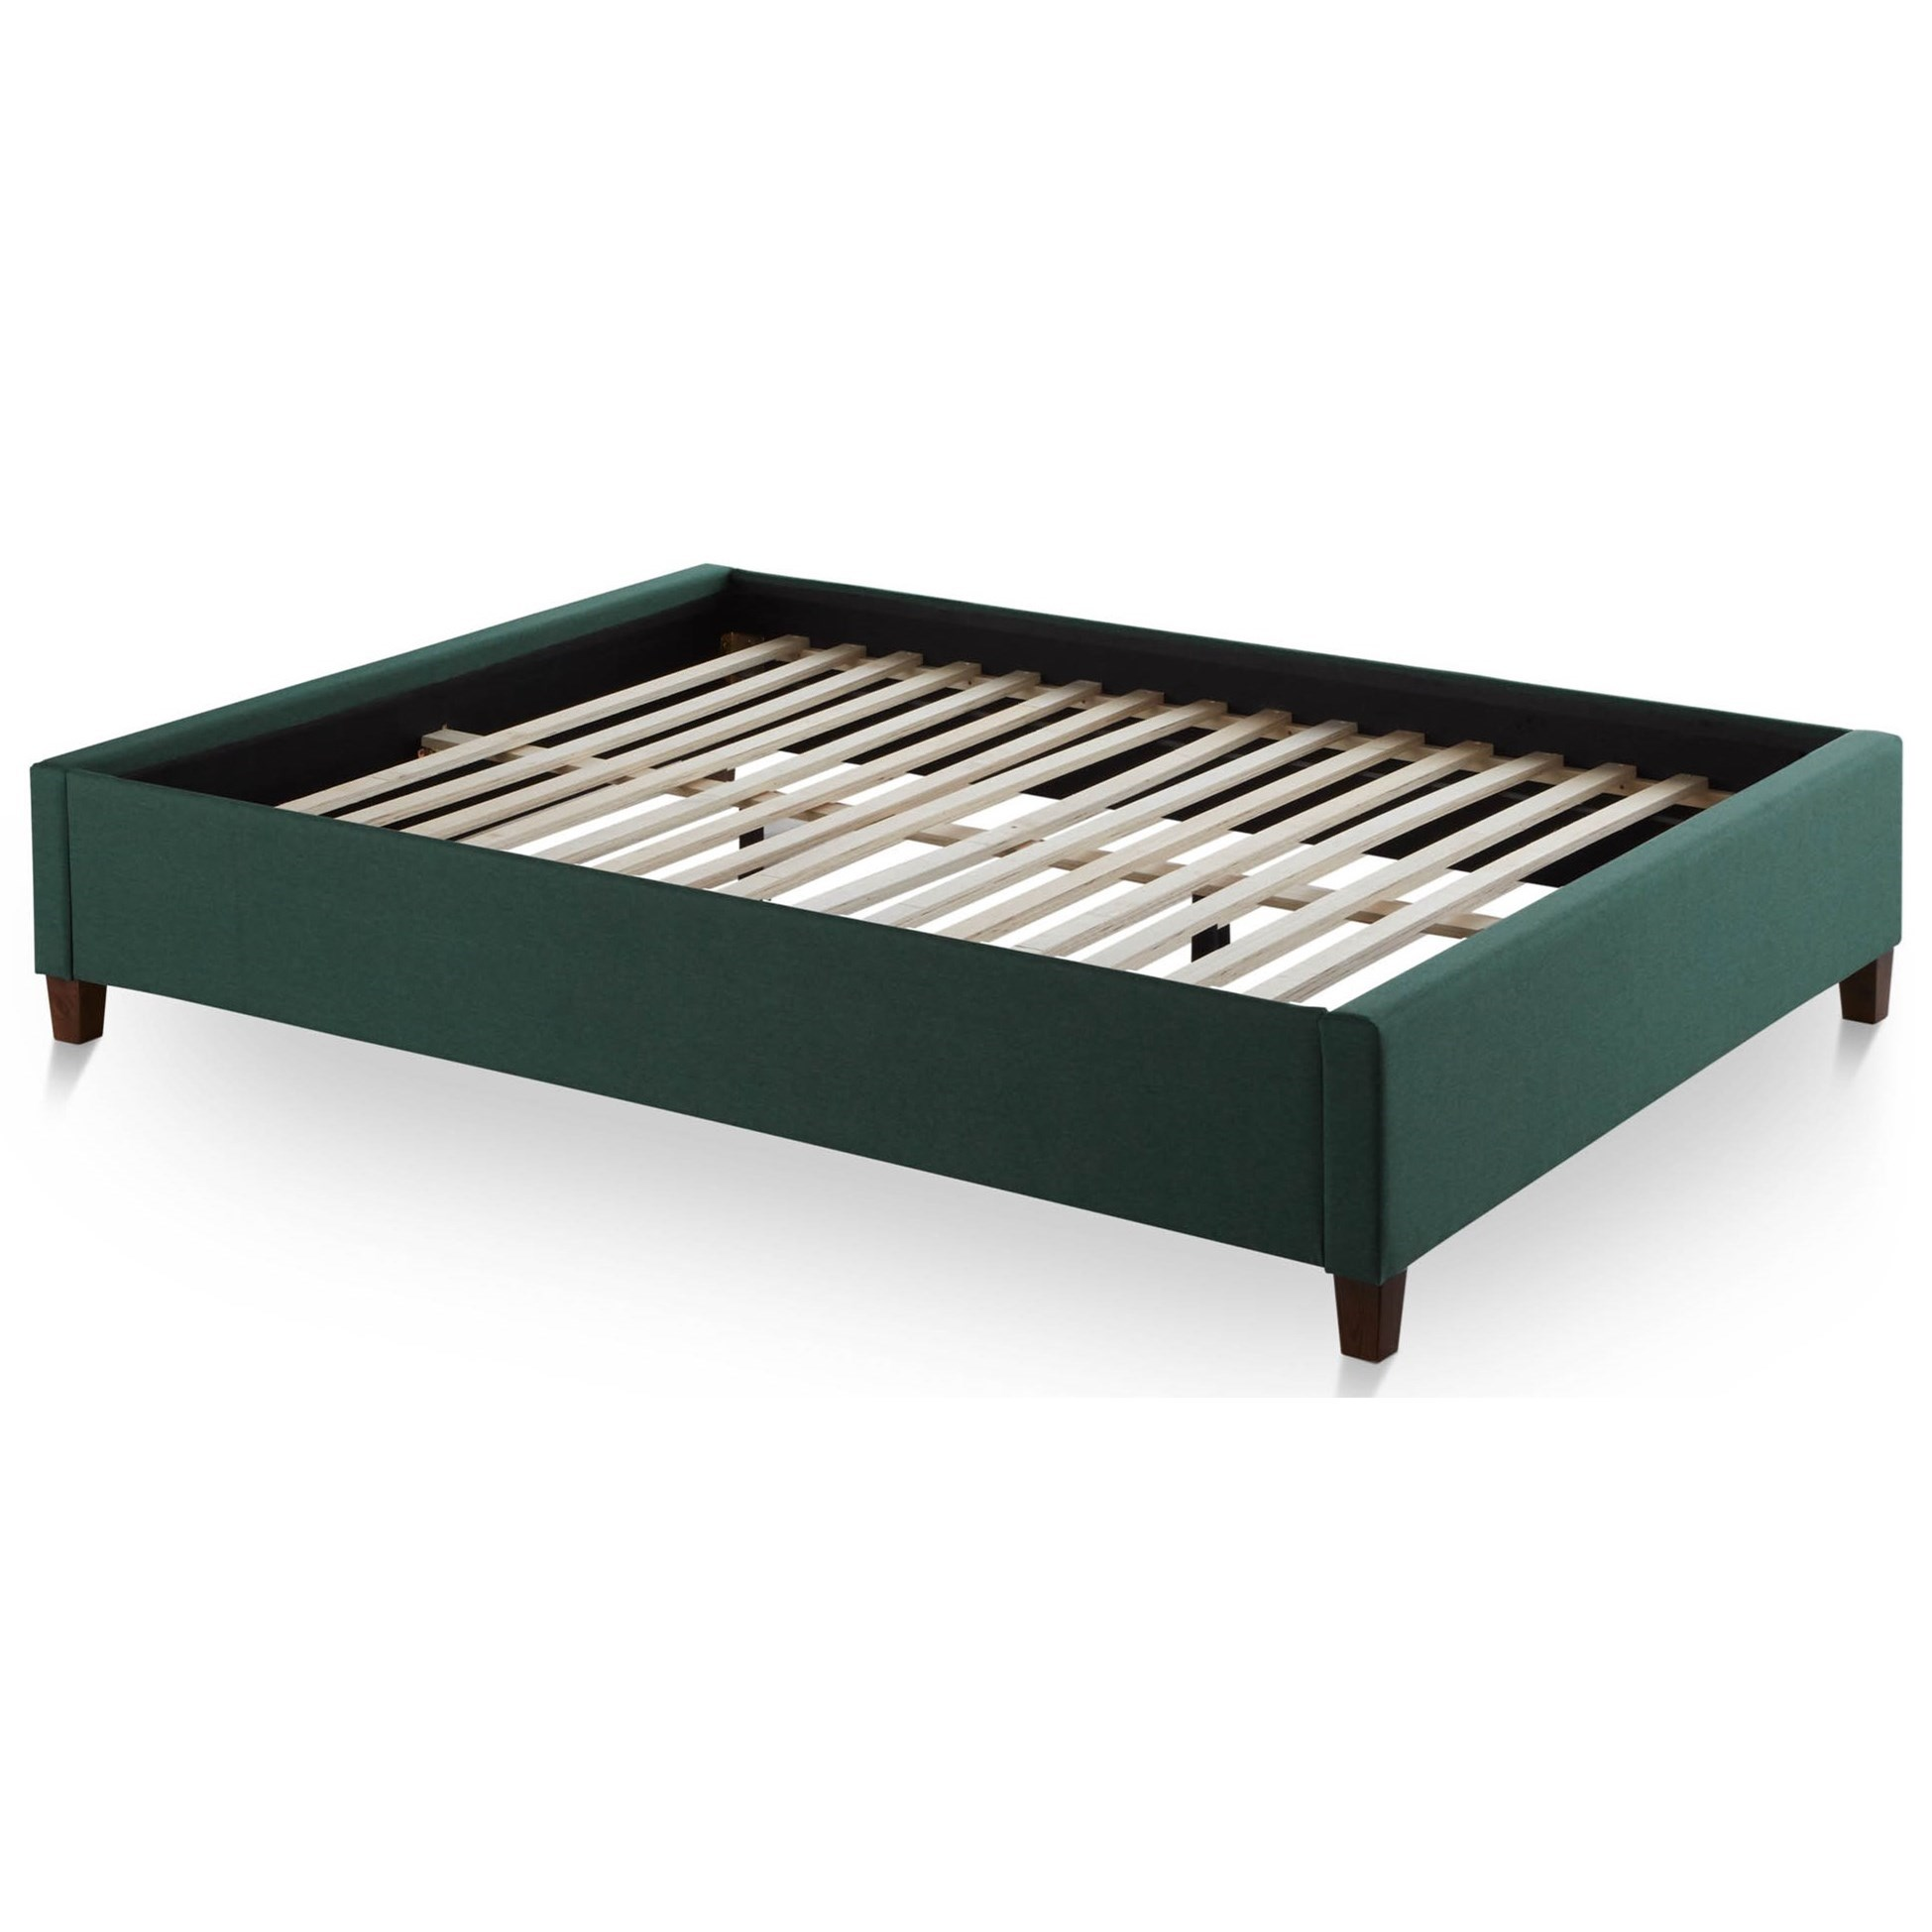 Eastman Cal King Bed by Malouf at Home Furnishings Direct